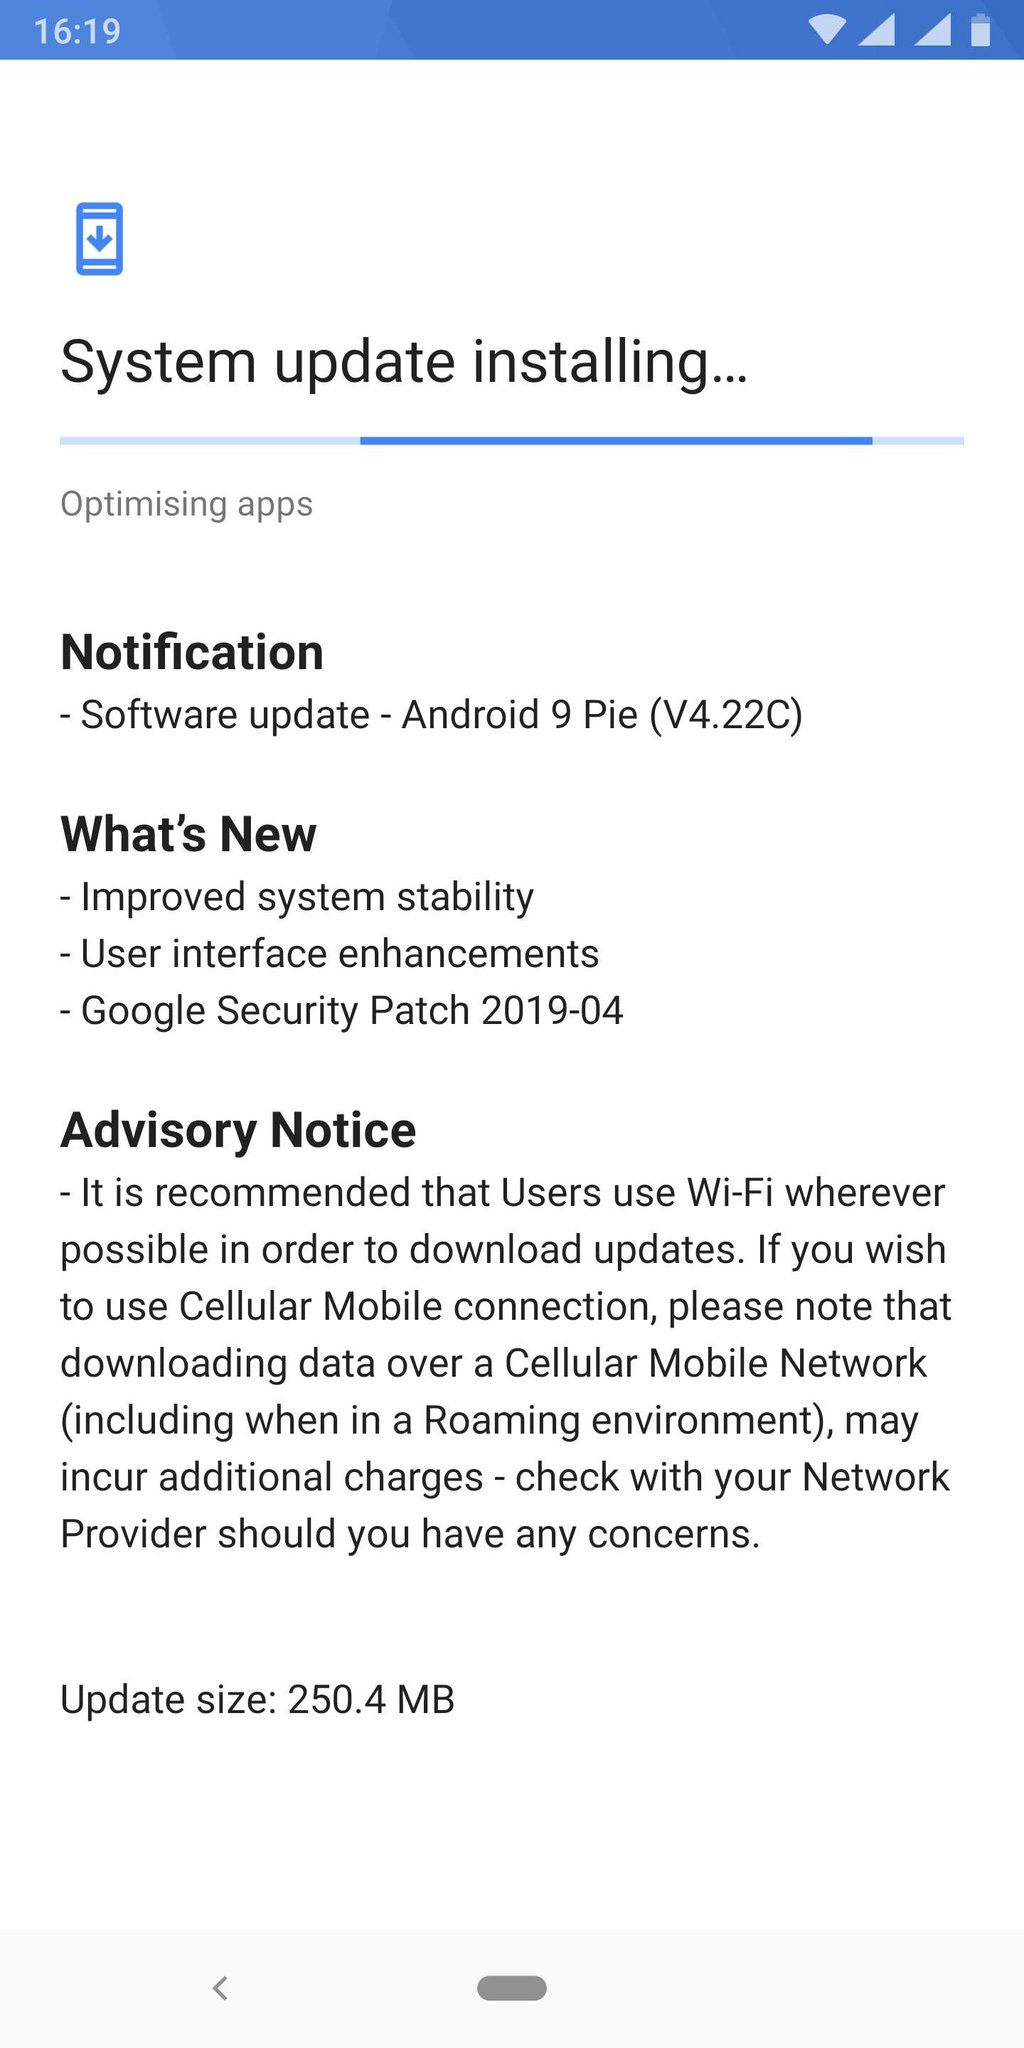 Nokia 9 PureView received Android 9 Pie build update that